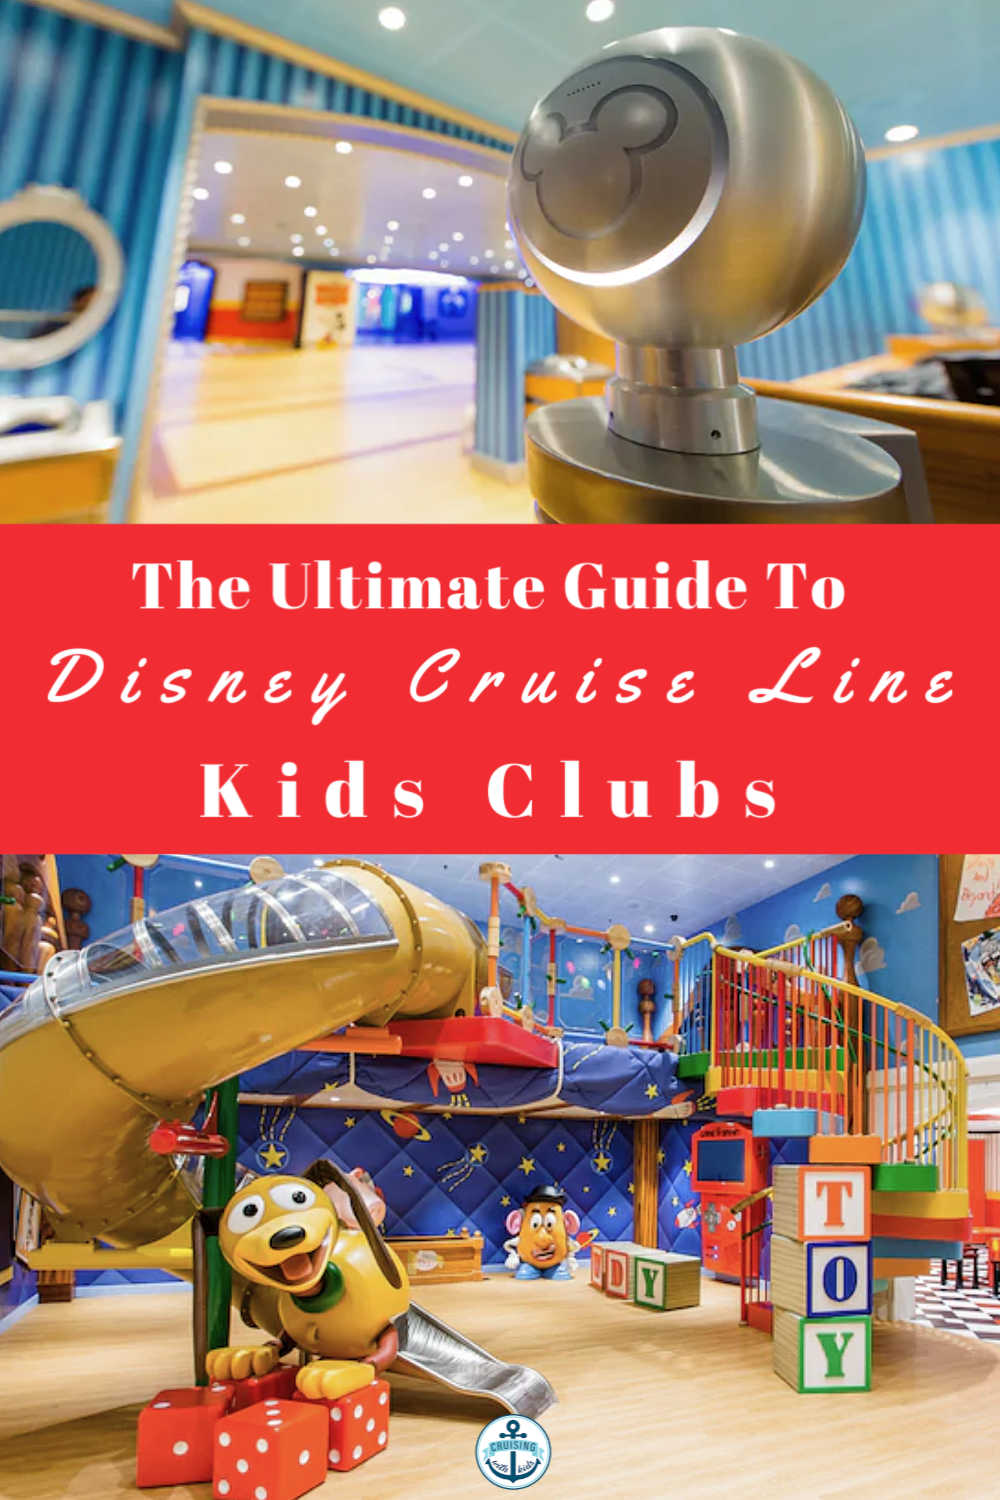 The Ultimate Guide To Disney Cruise Line Kids Club and whats on for kids at the Oceaneers Lab and Oceaneers Club